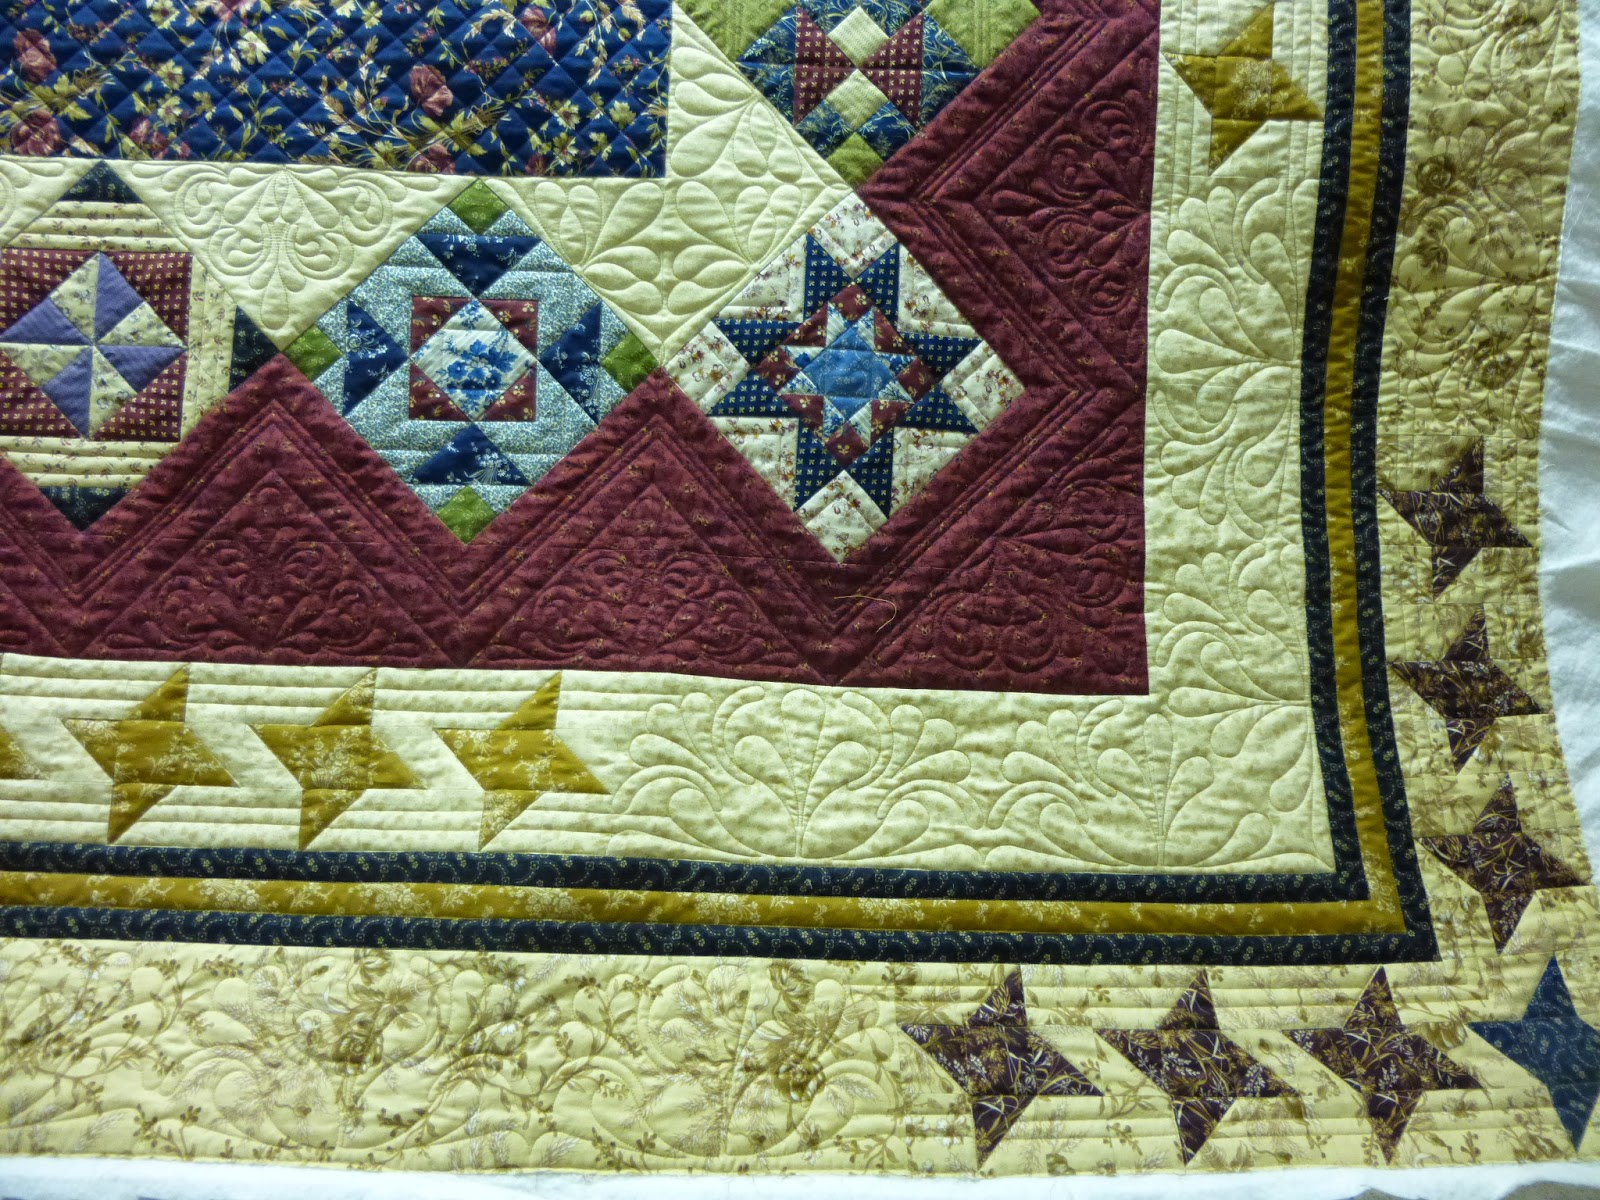 caledonia quilter: First Ladies Quilt and 2015 UFO Challenge : first ladies quilt - Adamdwight.com